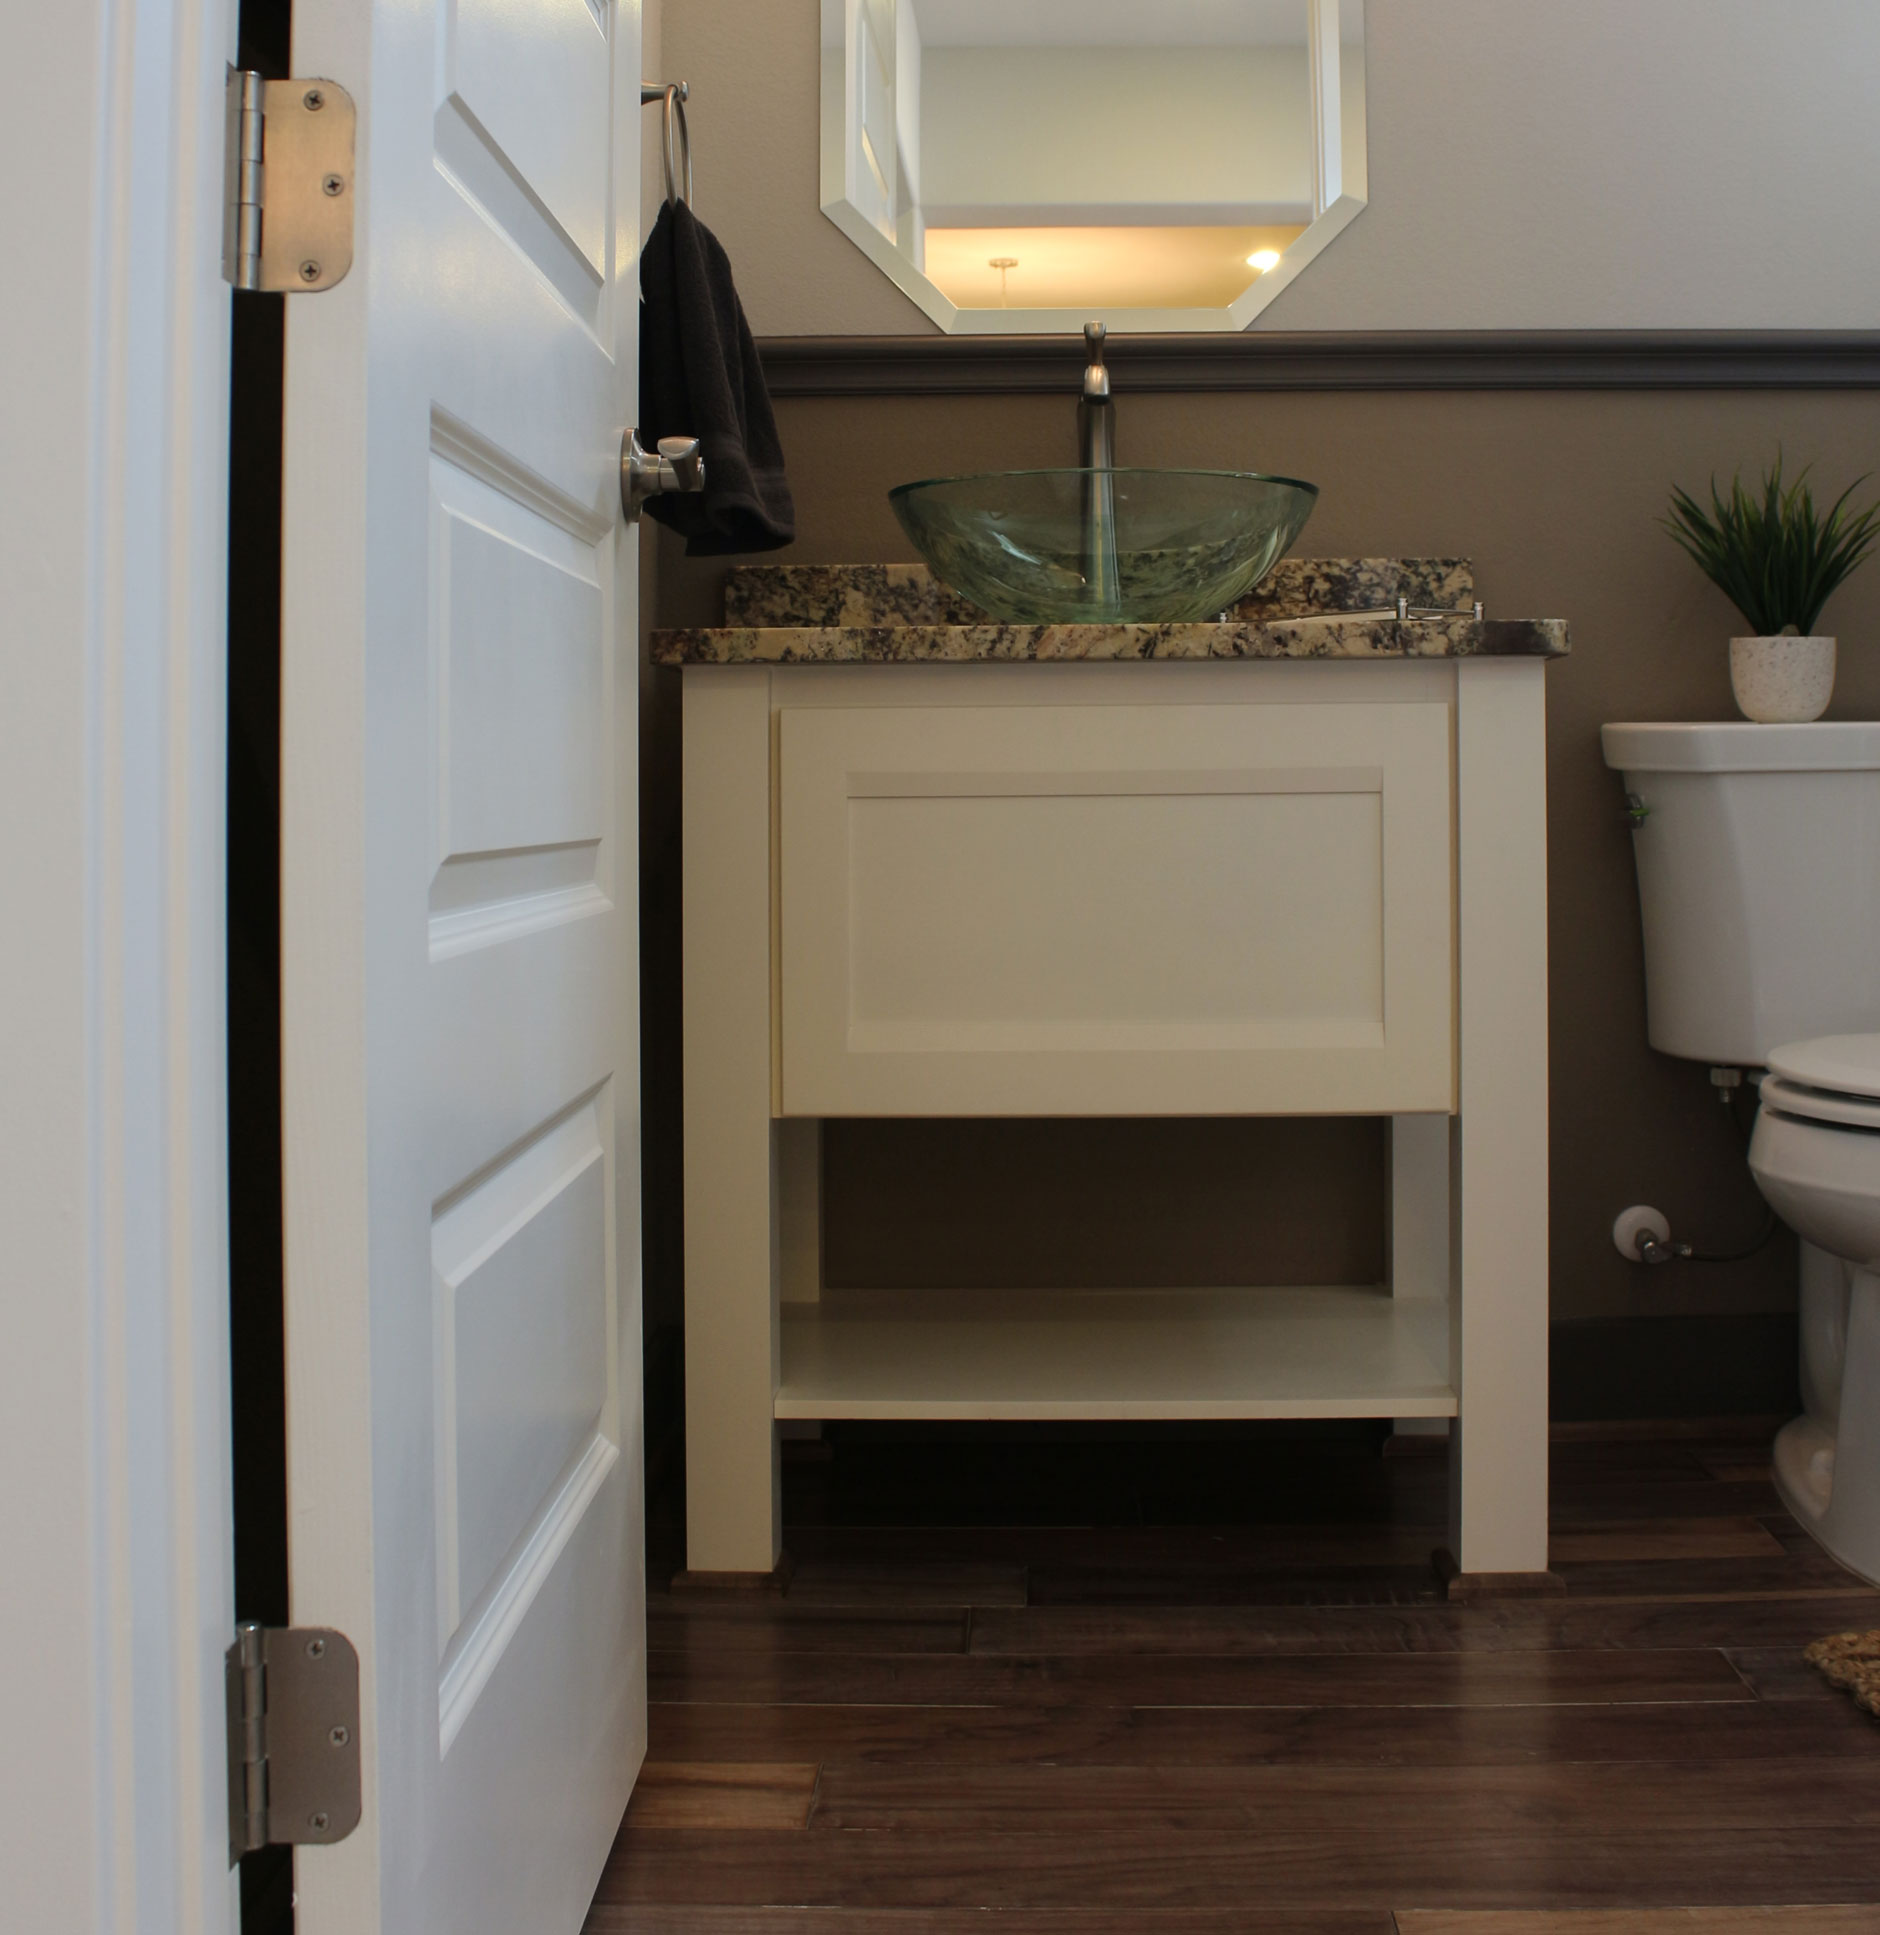 Powder Bath vanity cabinets in Briscoe style in Bone by Burrows Cabinets